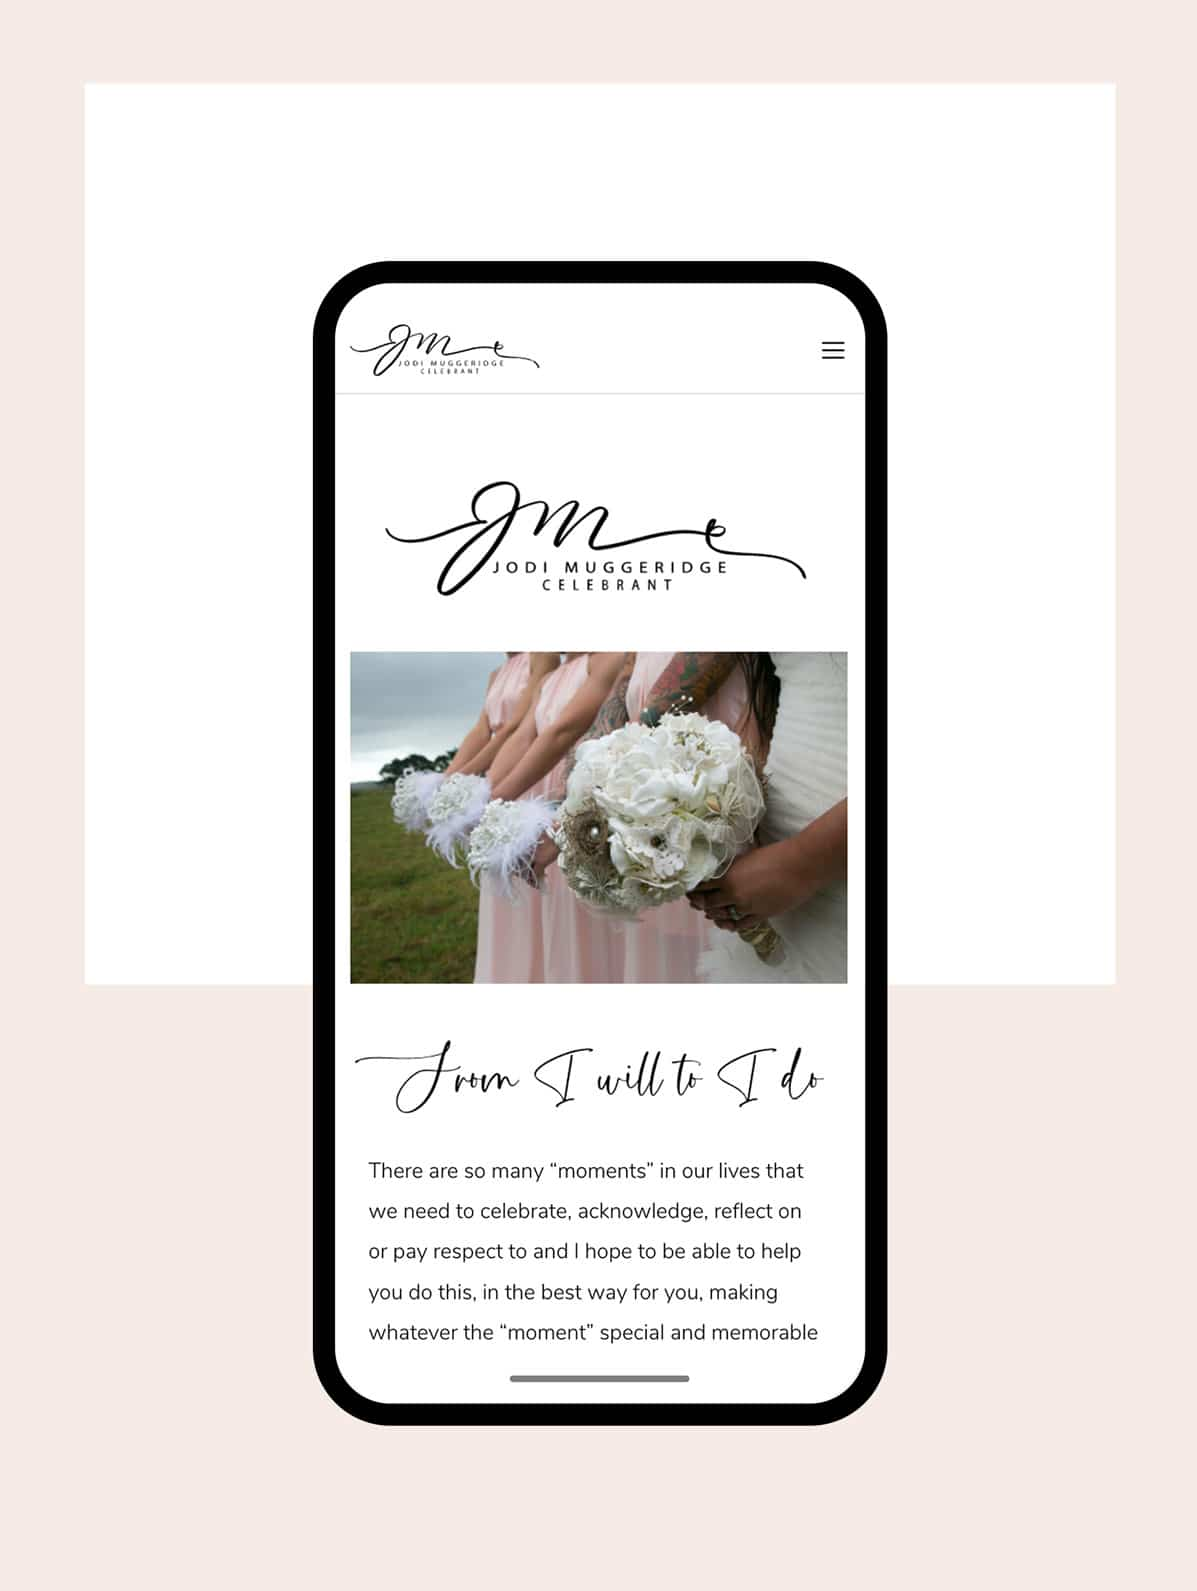 Clean, celebrant website design with script style fonts